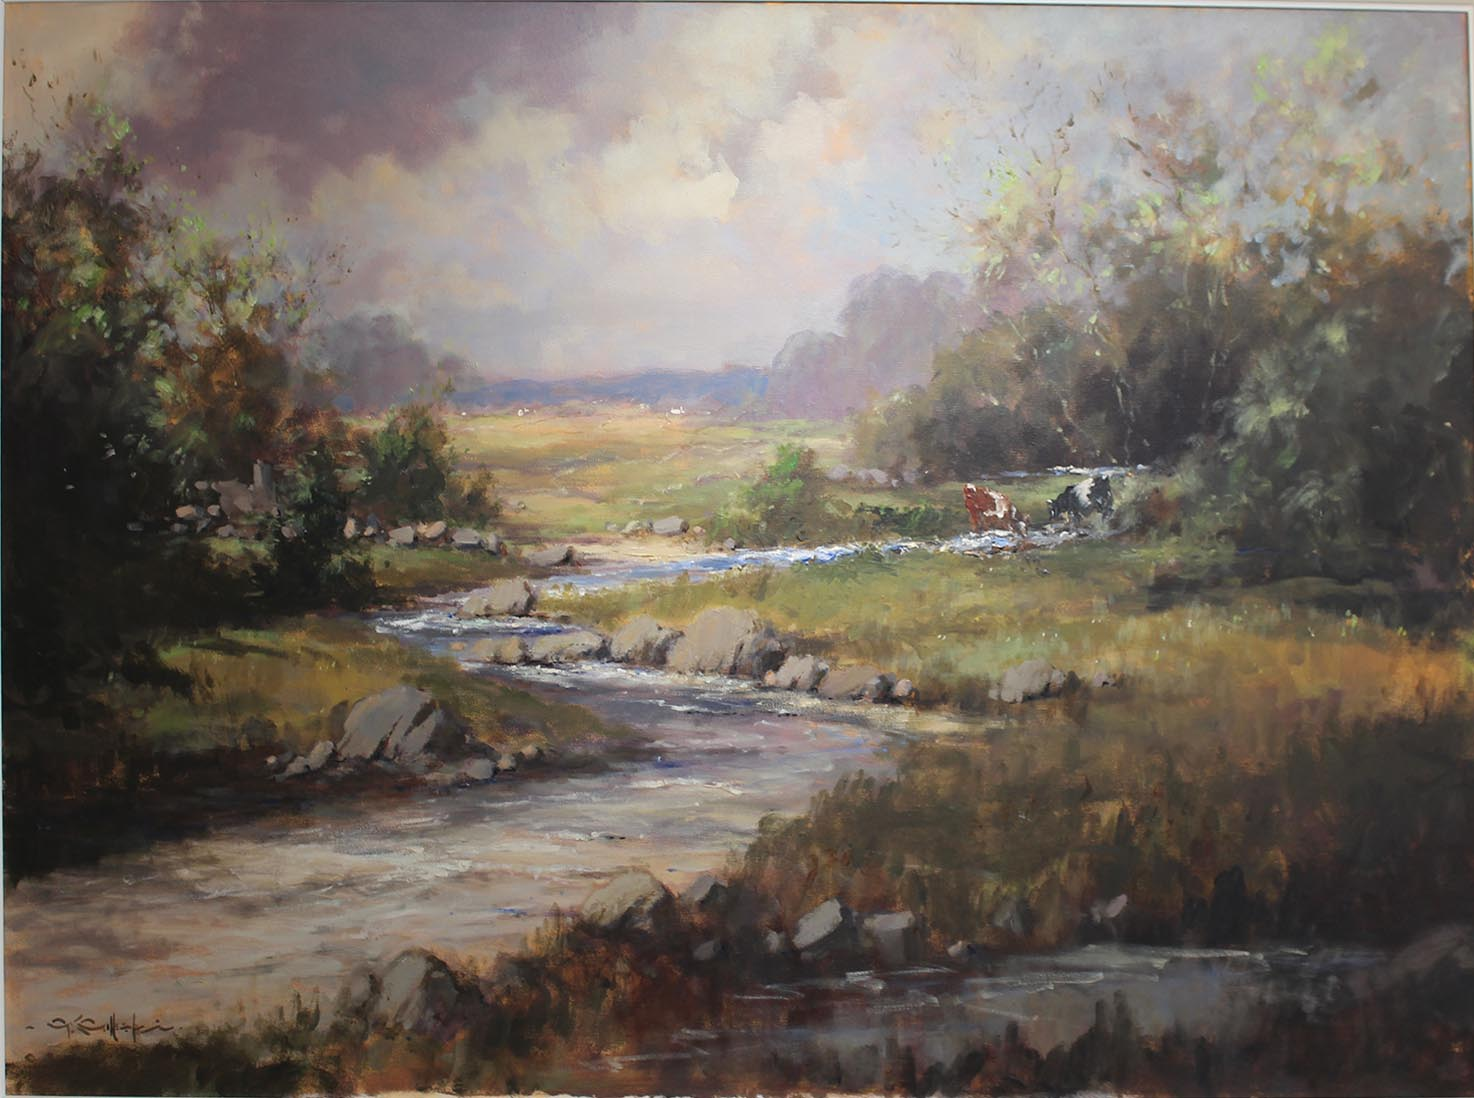 Lot 23 - George K. Gillespie RUA 1924-1995 THE BURN, NEAR KILLEN, CASTLEDERG, CO. TYRONE Oil on canvas,